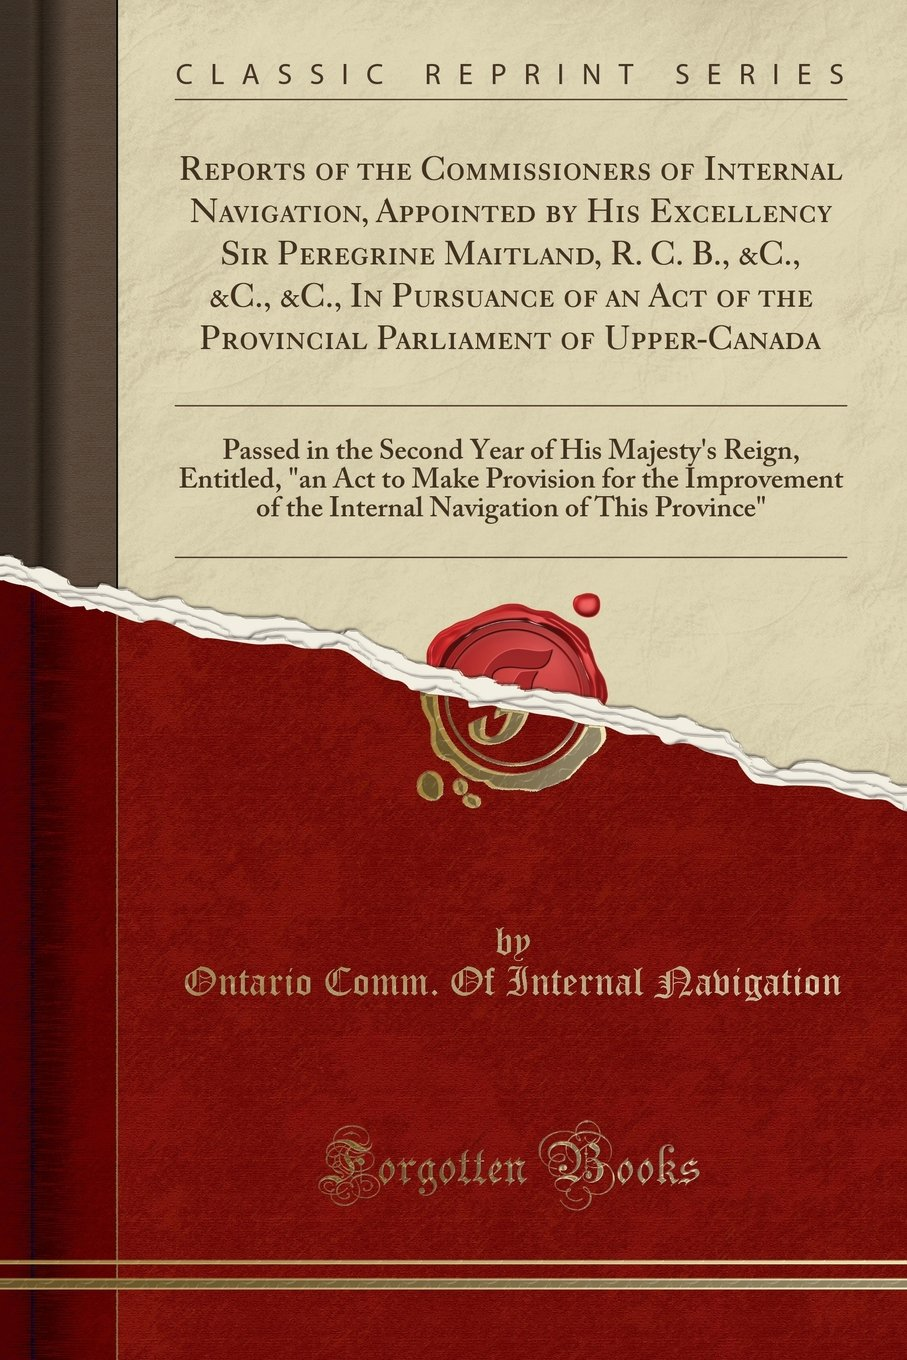 Reports of the Commissioners of Internal Navigation, Appointed by His Excellency Sir Peregrine Maitland, R. C. B., &C., &C., &C., In Pursuance of an ... Second Year of His Majesty's Reign, Entitl pdf